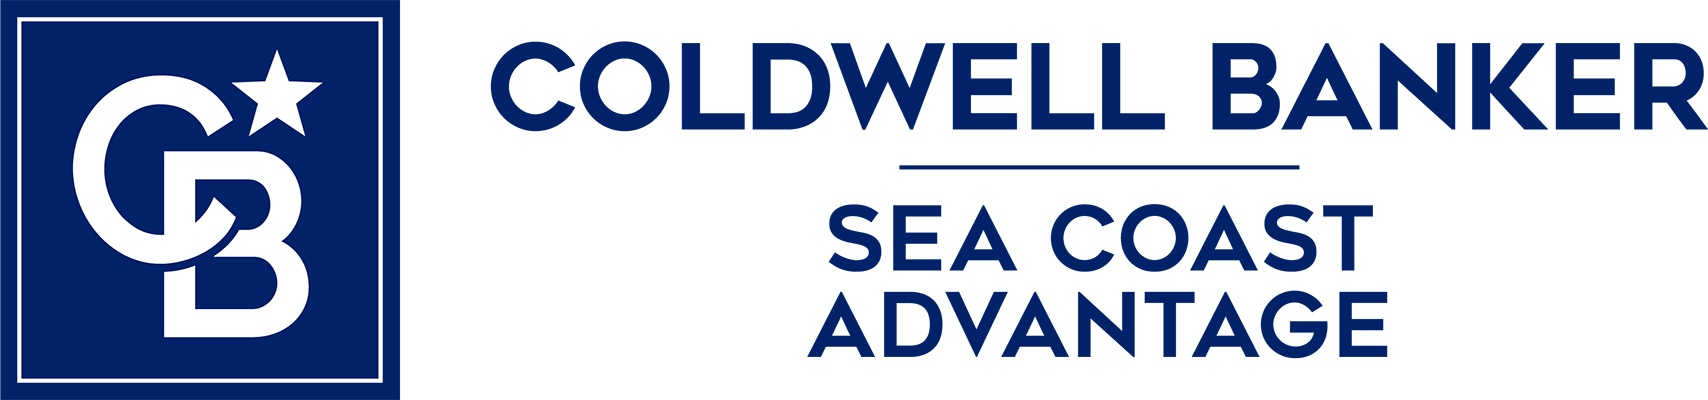 Tim Howard - Coldwell Banker Sea Coast Advantage Realty